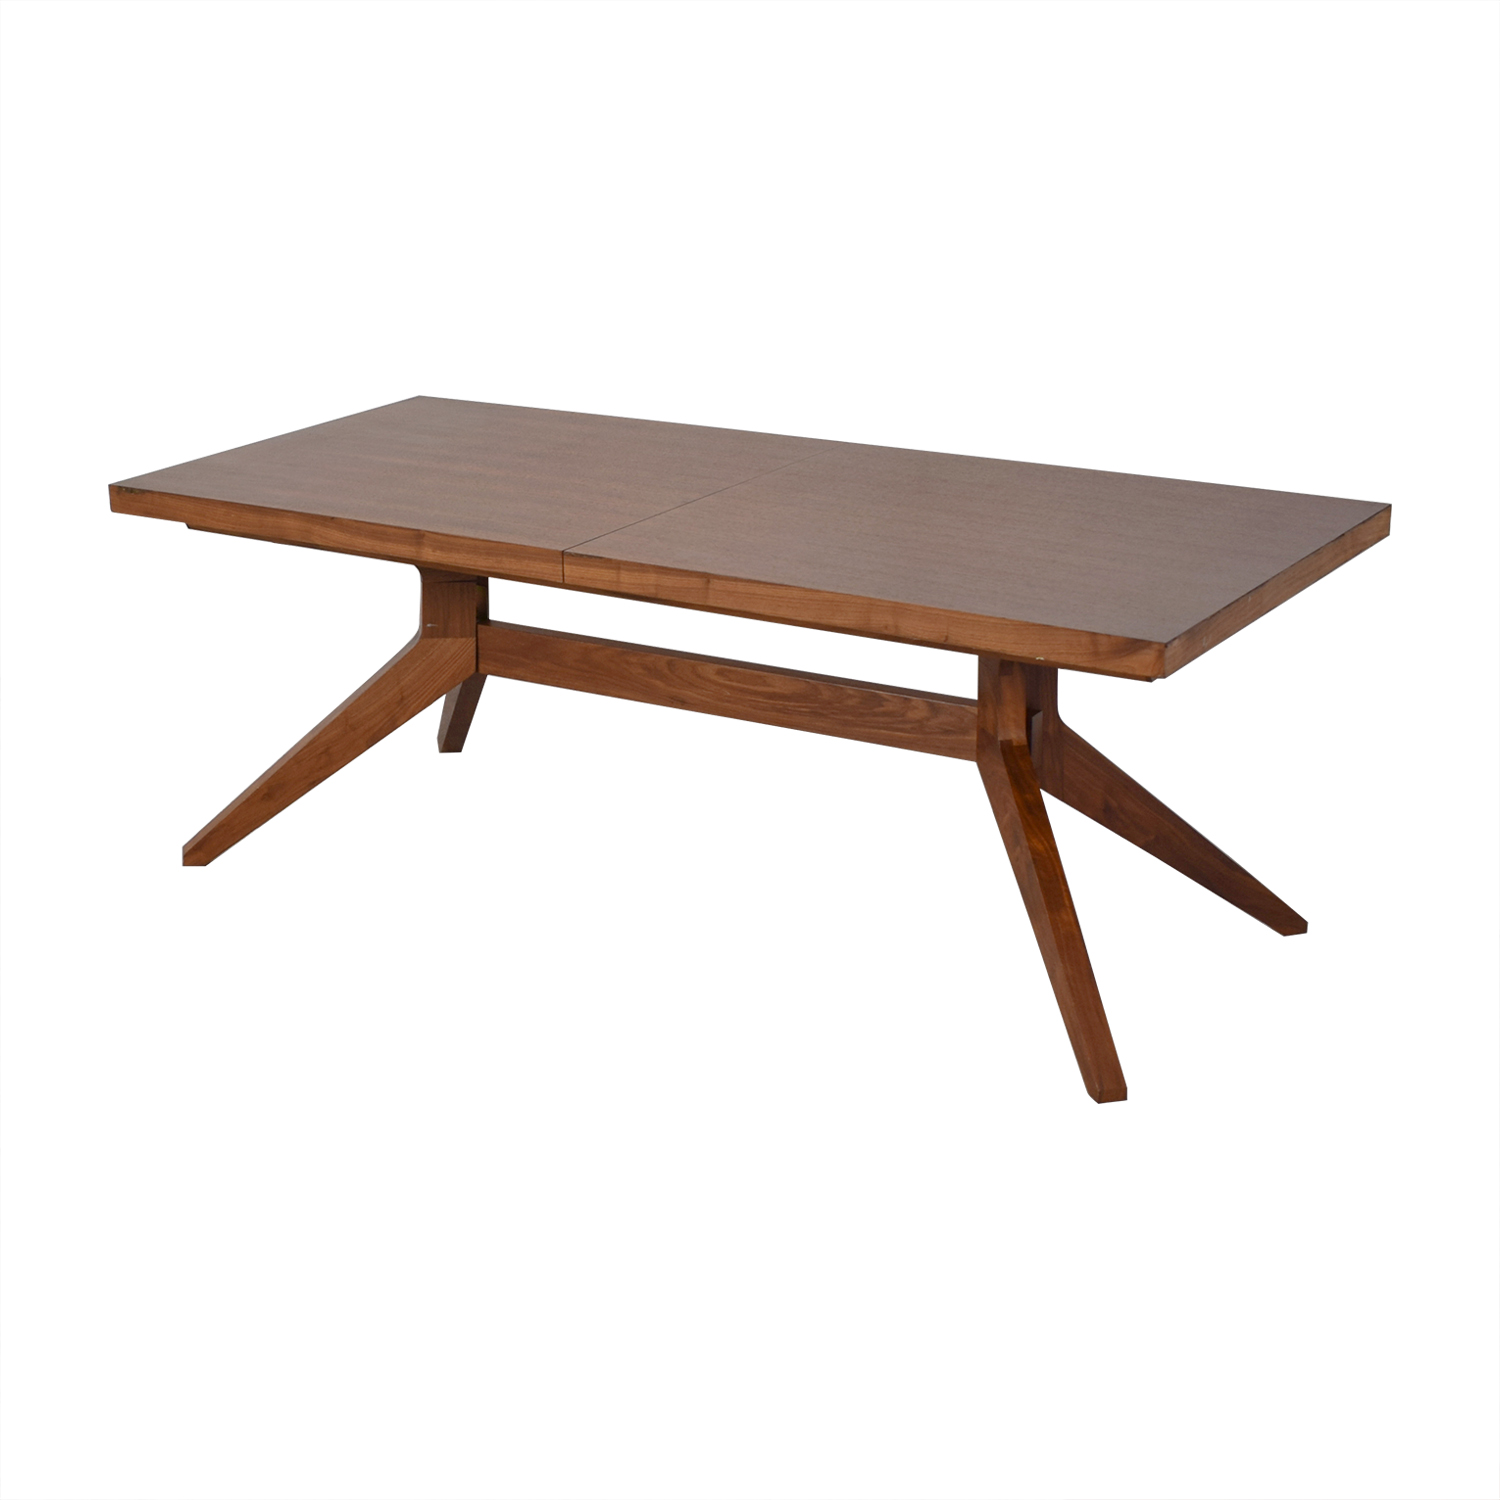 buy Case Matthew Hilton for Case Cross Extension Dining Table online